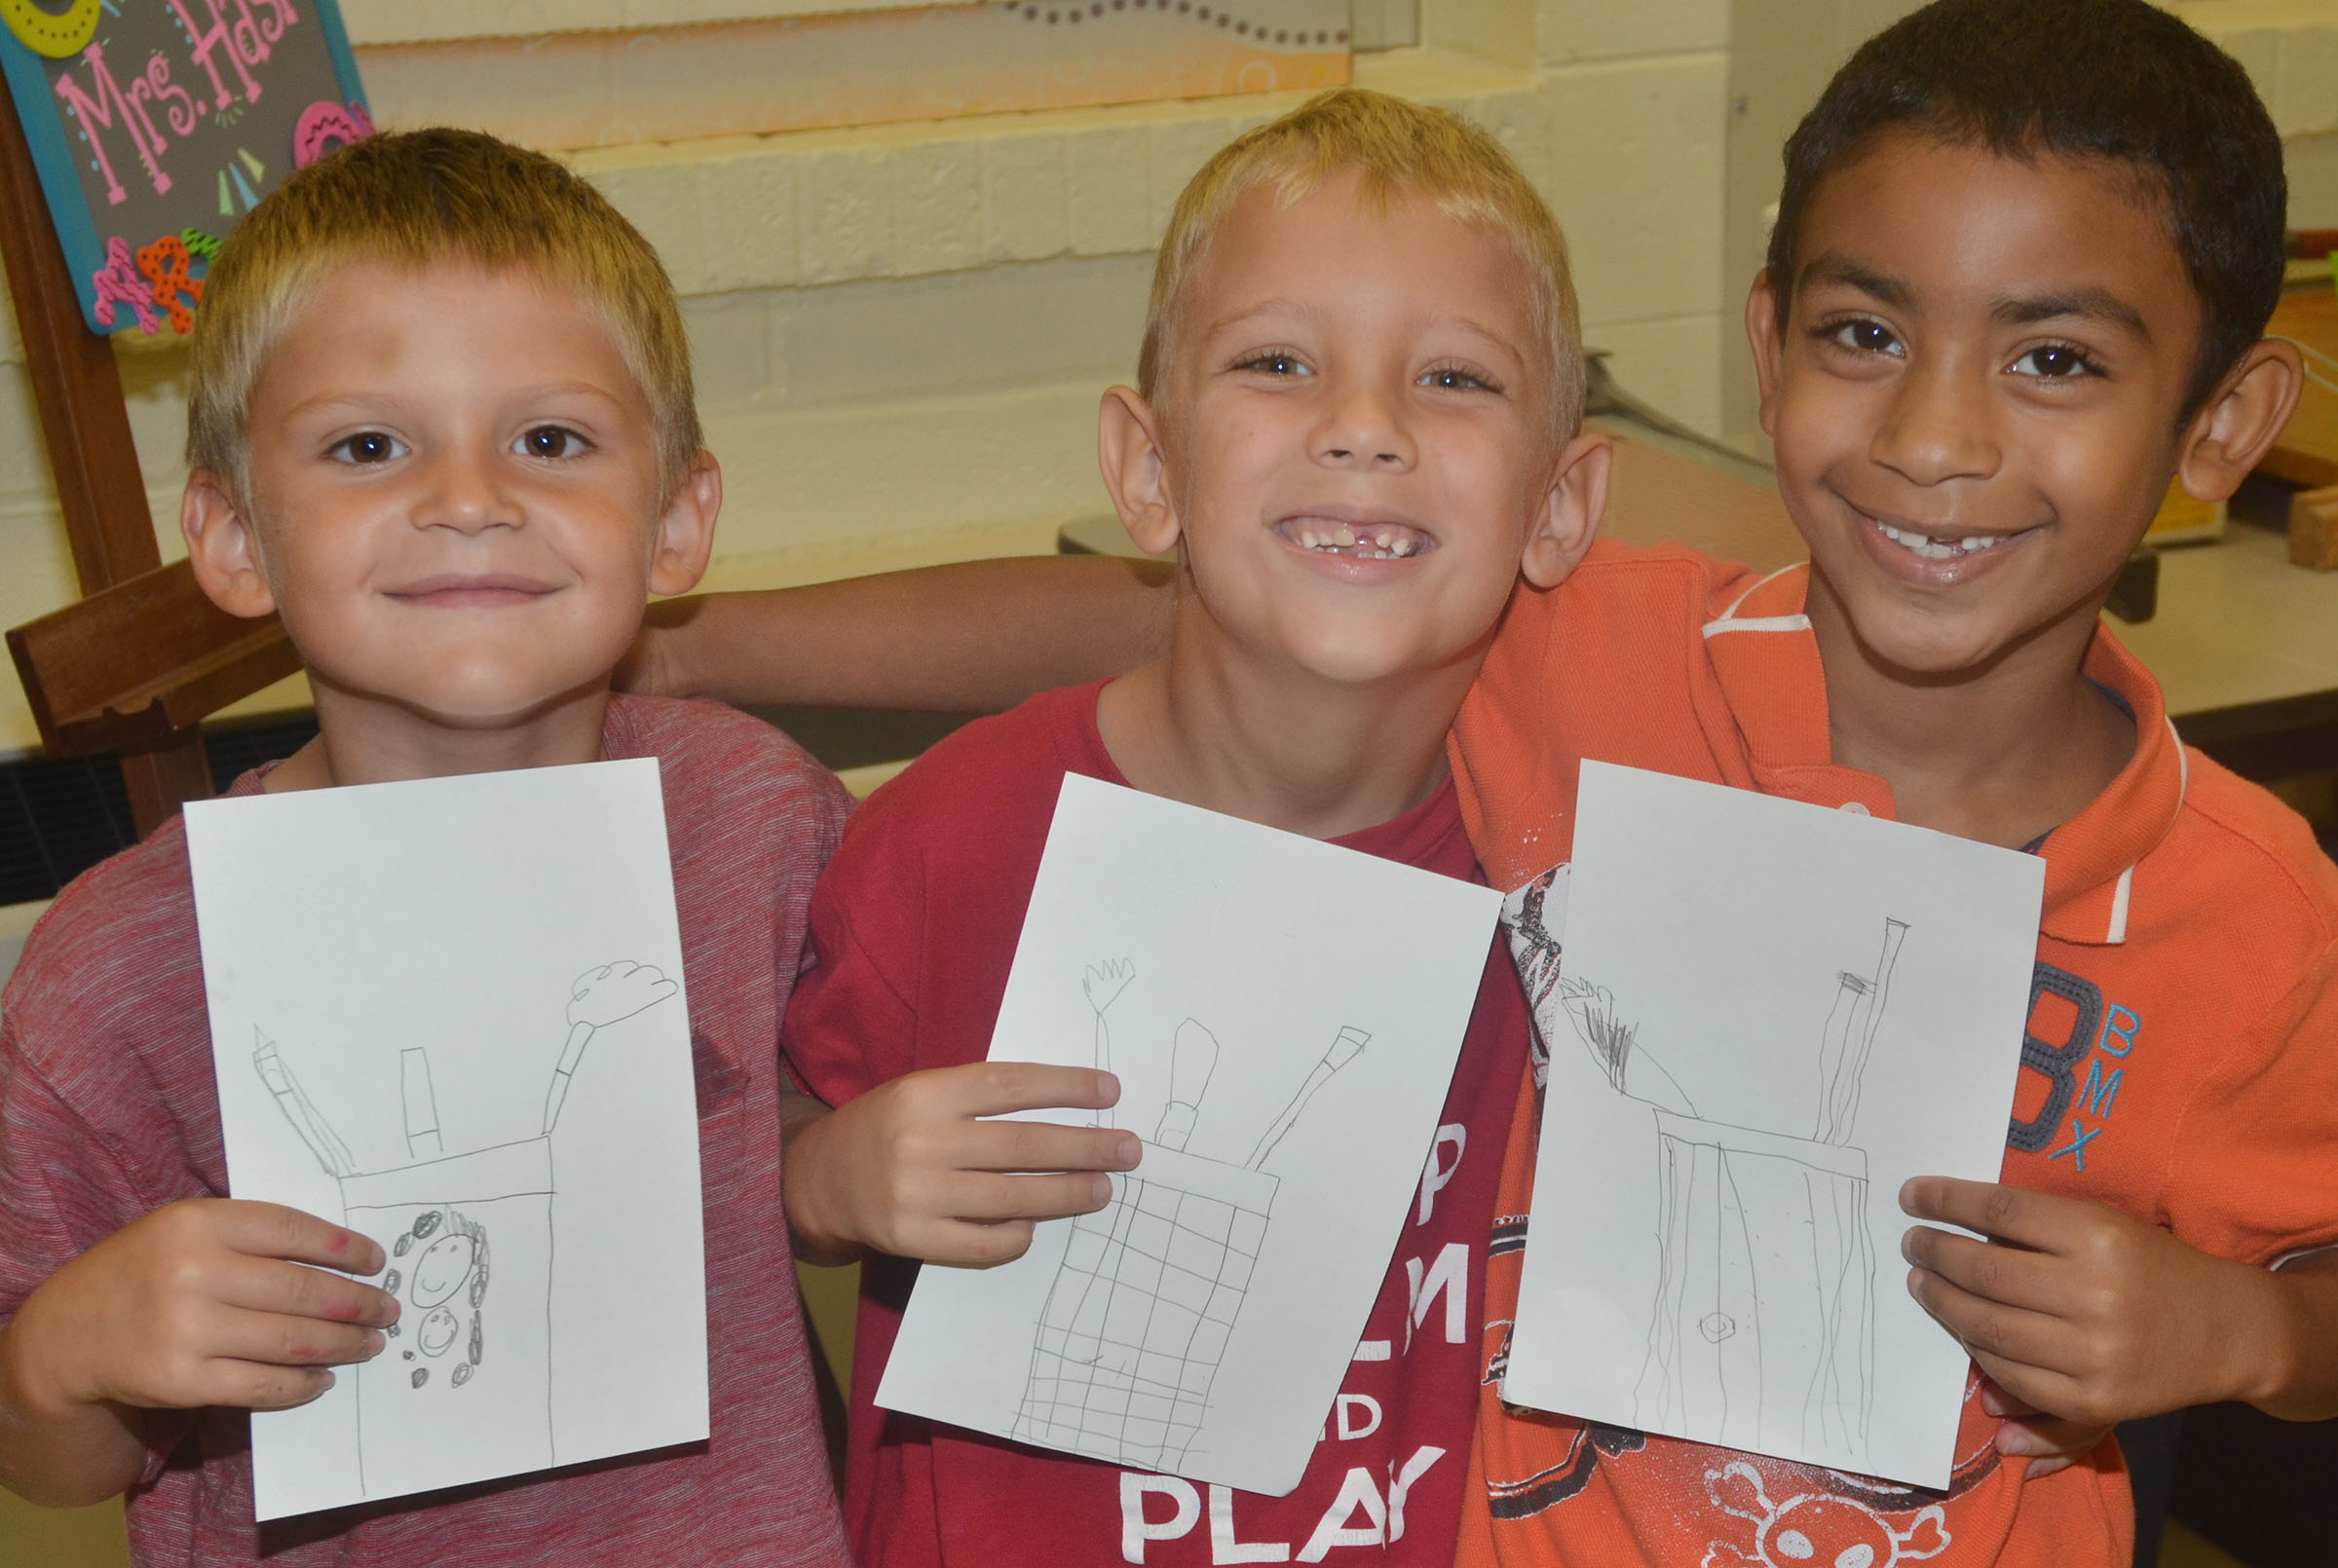 CES first-graders, from left, Seeley Whitaker, Gabe Prior and Enoch Smith hold their finished still life drawings.